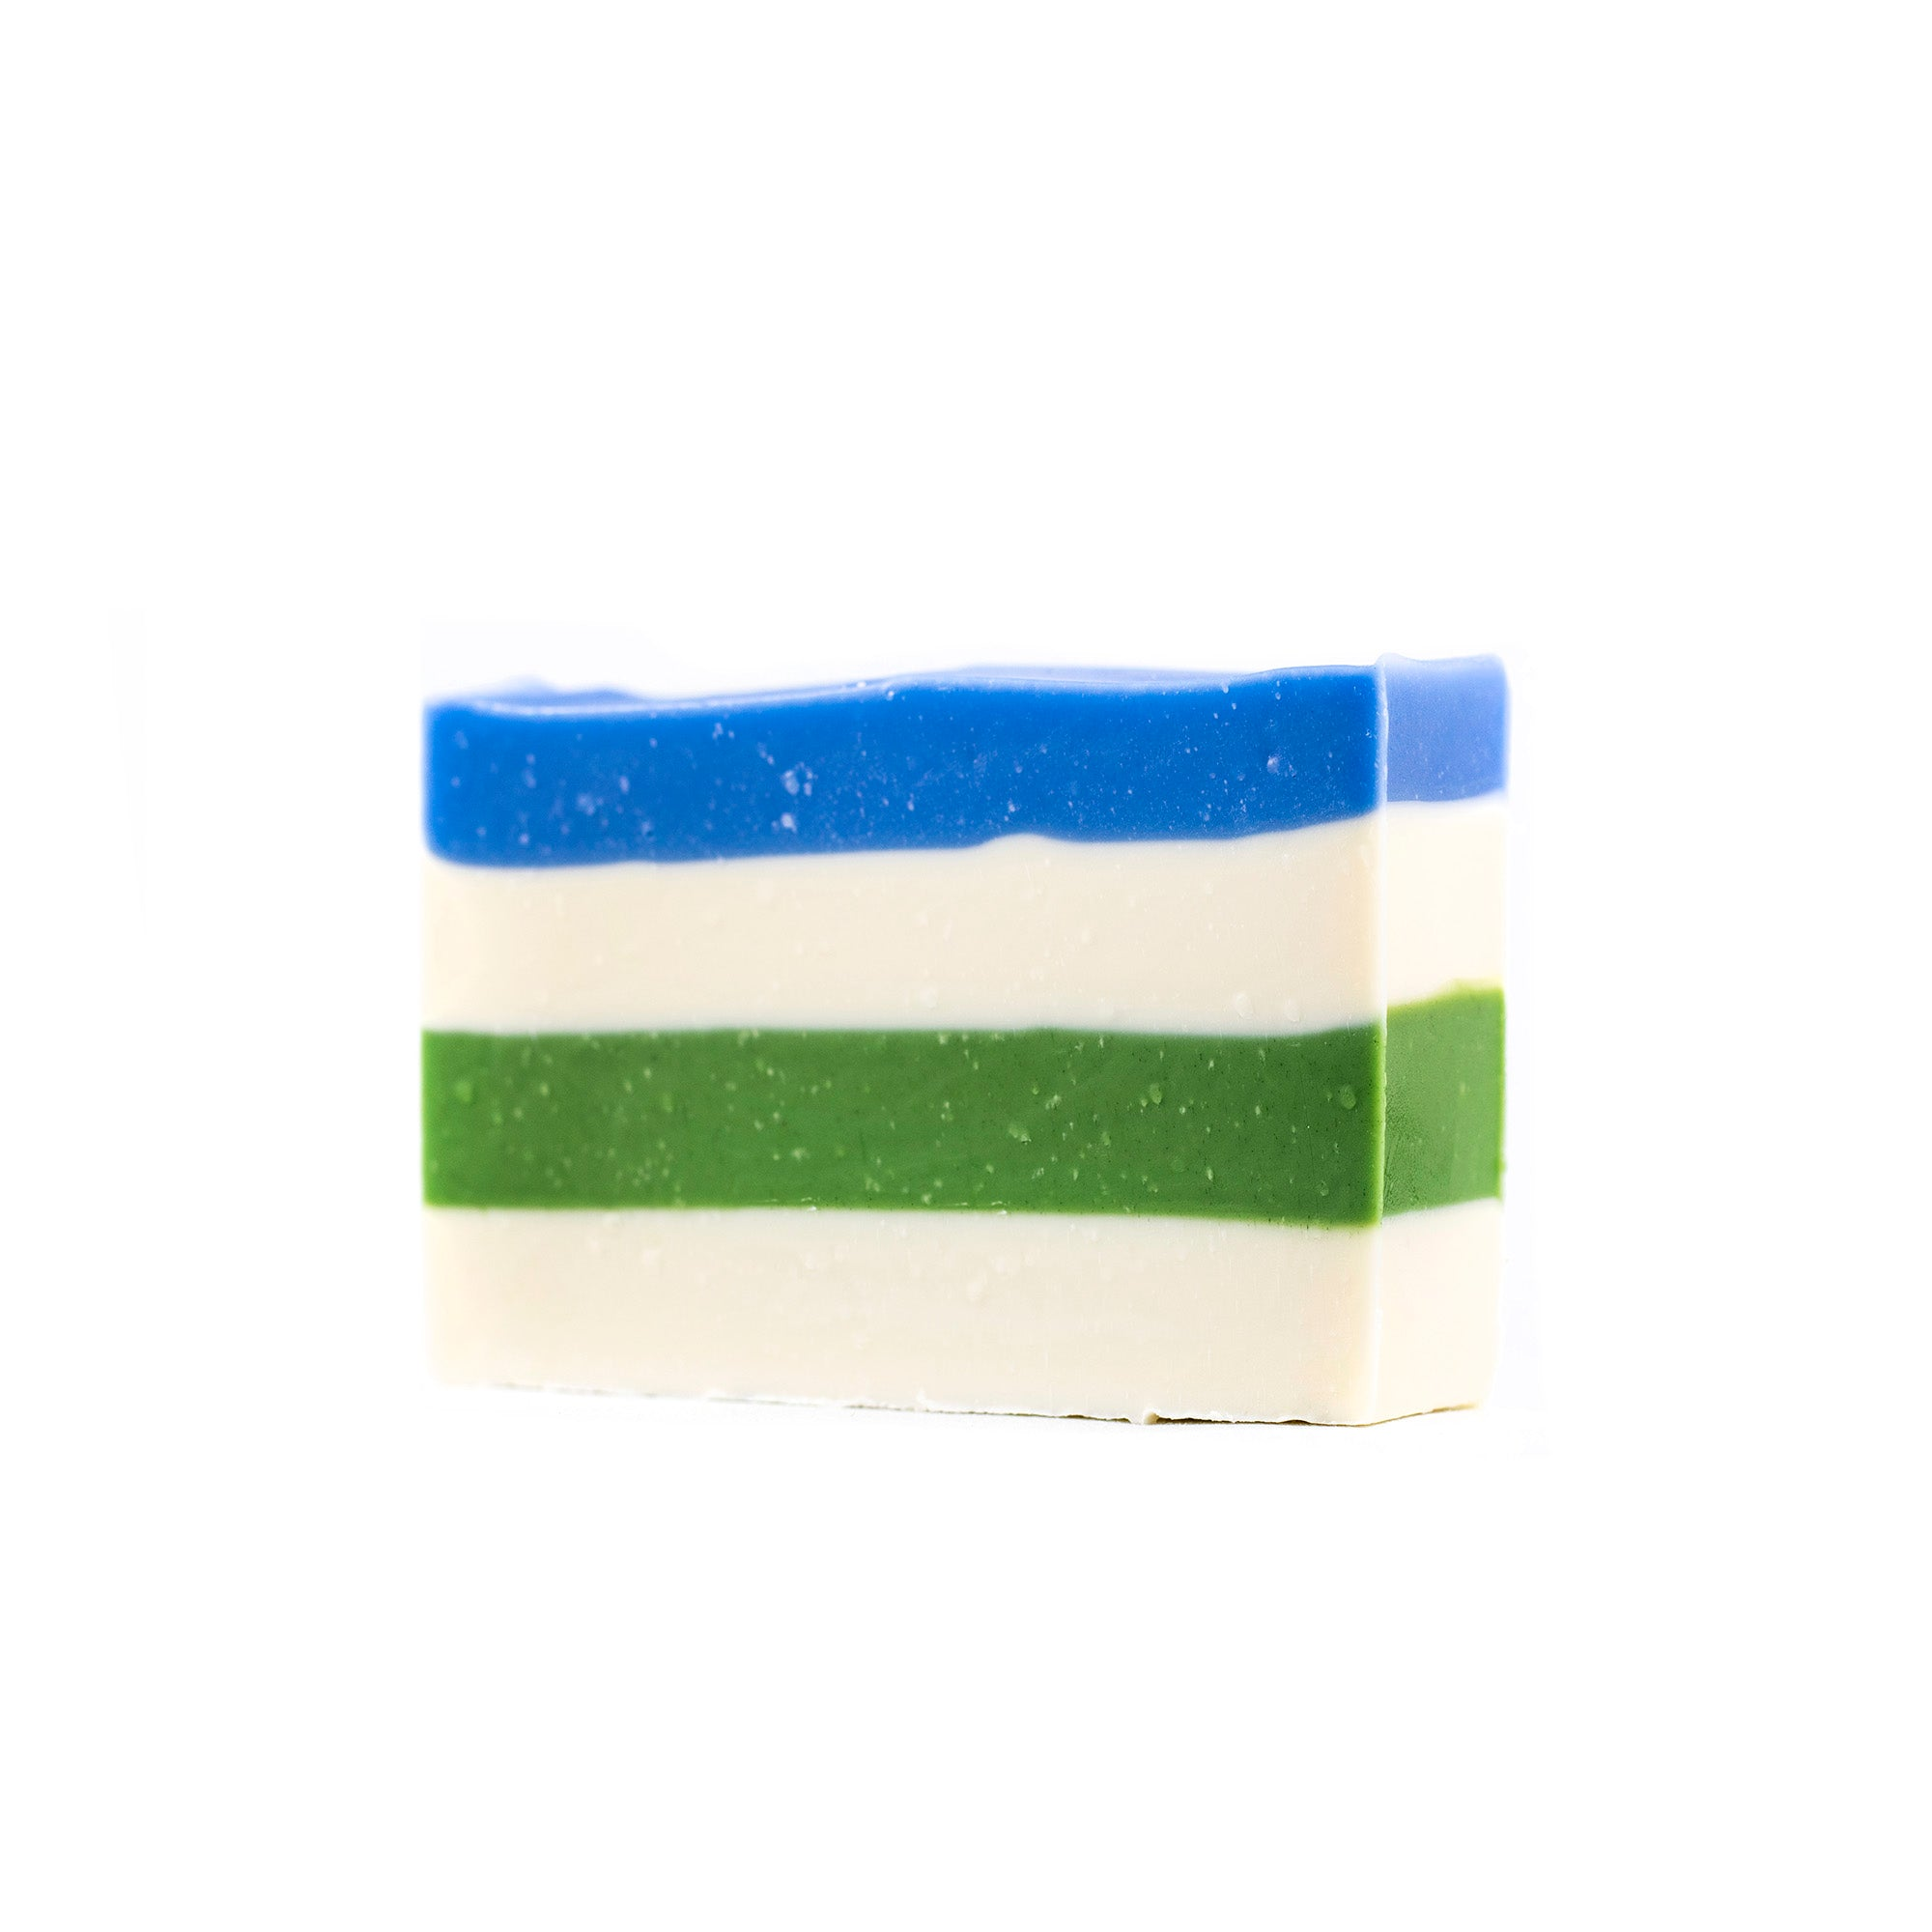 A layered soap starting with blue, stacked on top of white, followed with a forest green and finishing of the bottom layer with white.